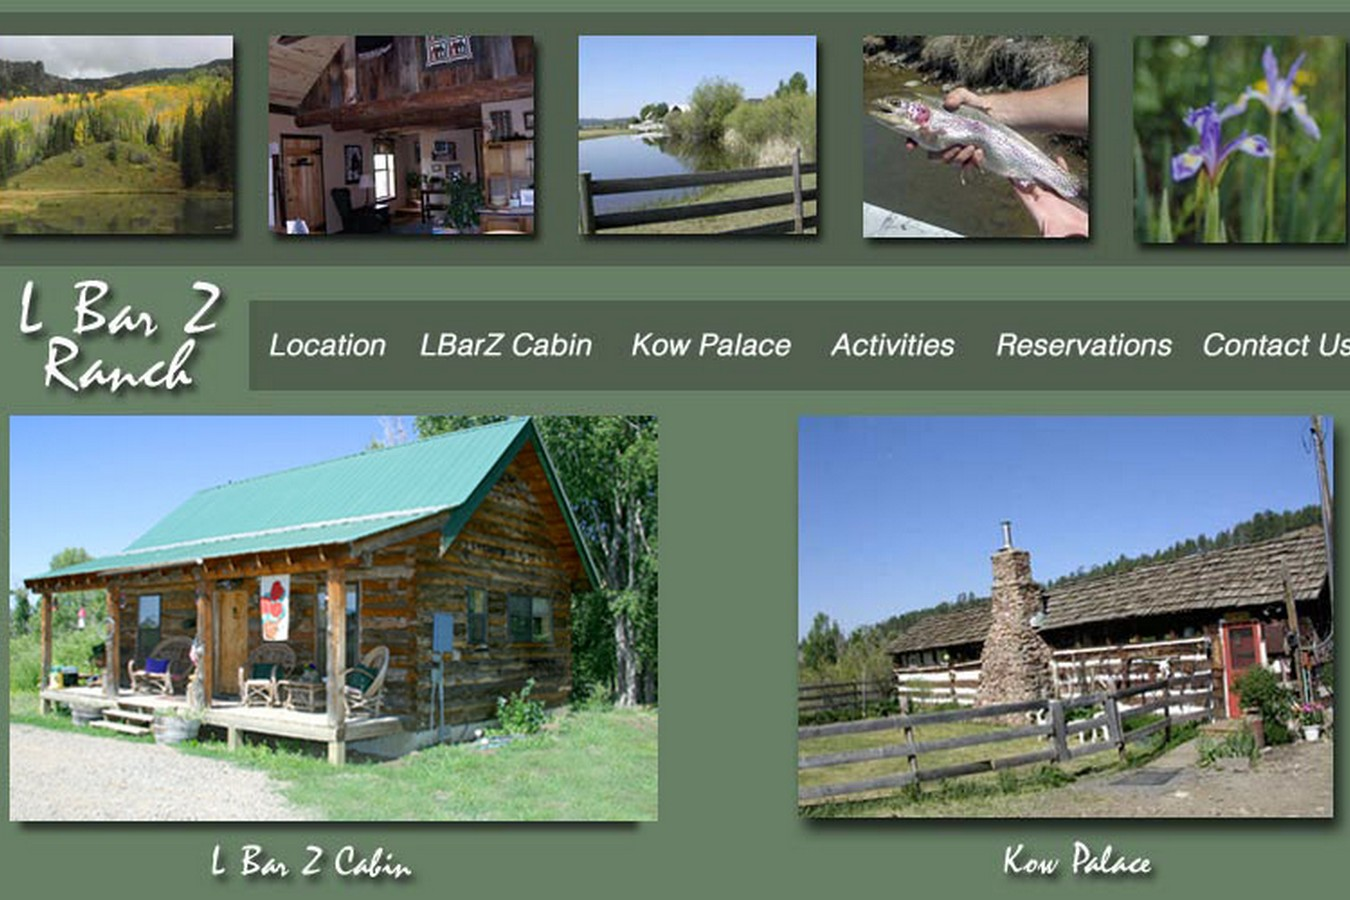 L Bar Z Ranch Cabins